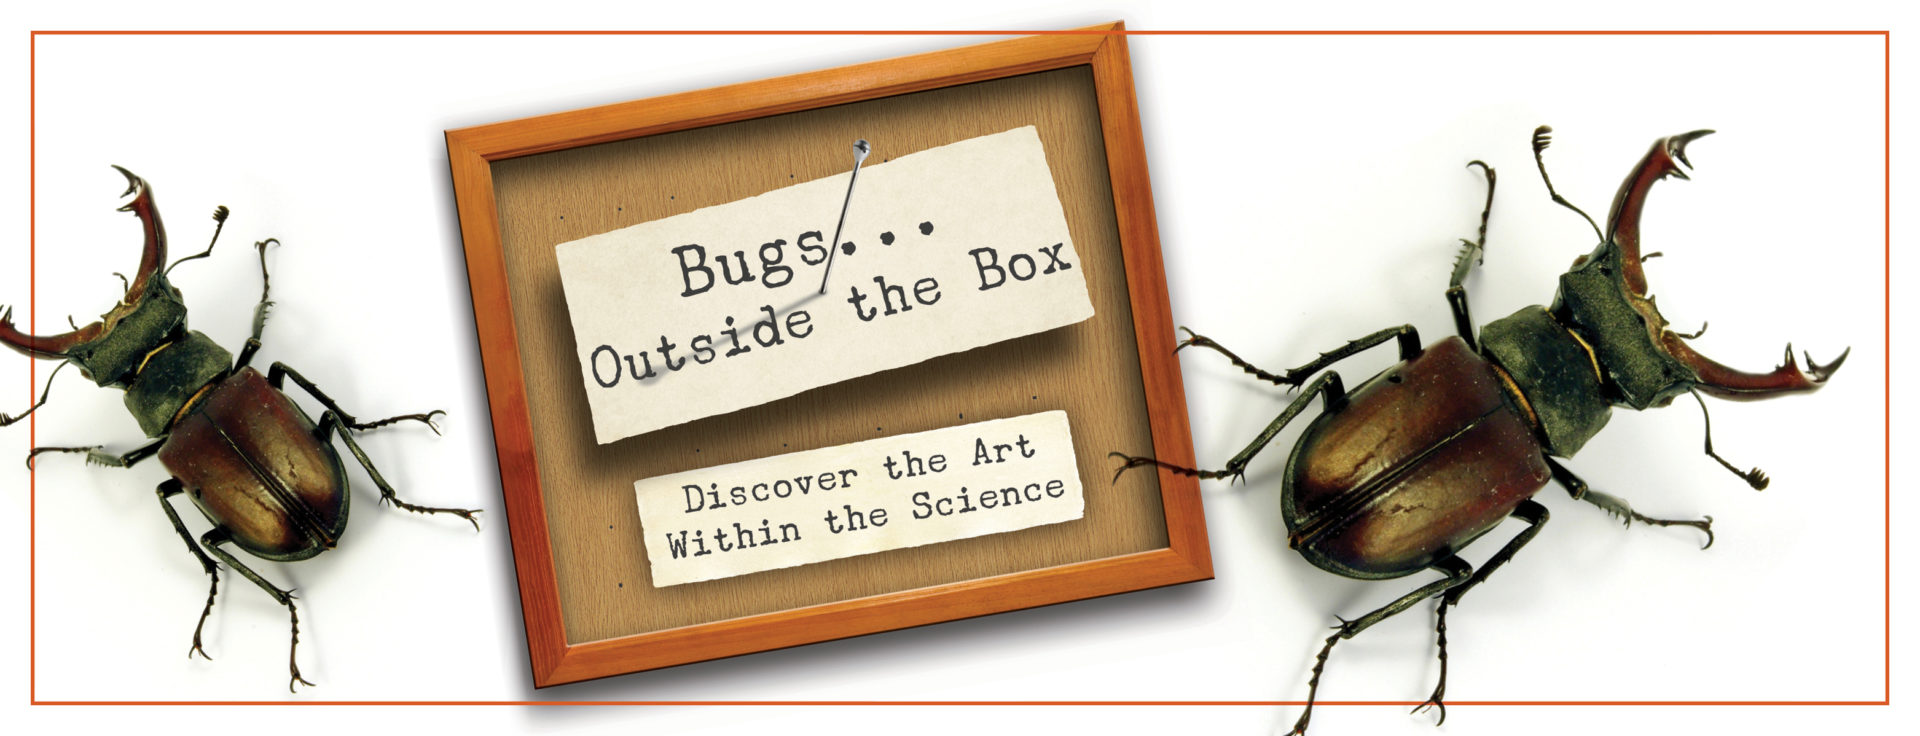 2 oversized beetles and specimen cards: Text